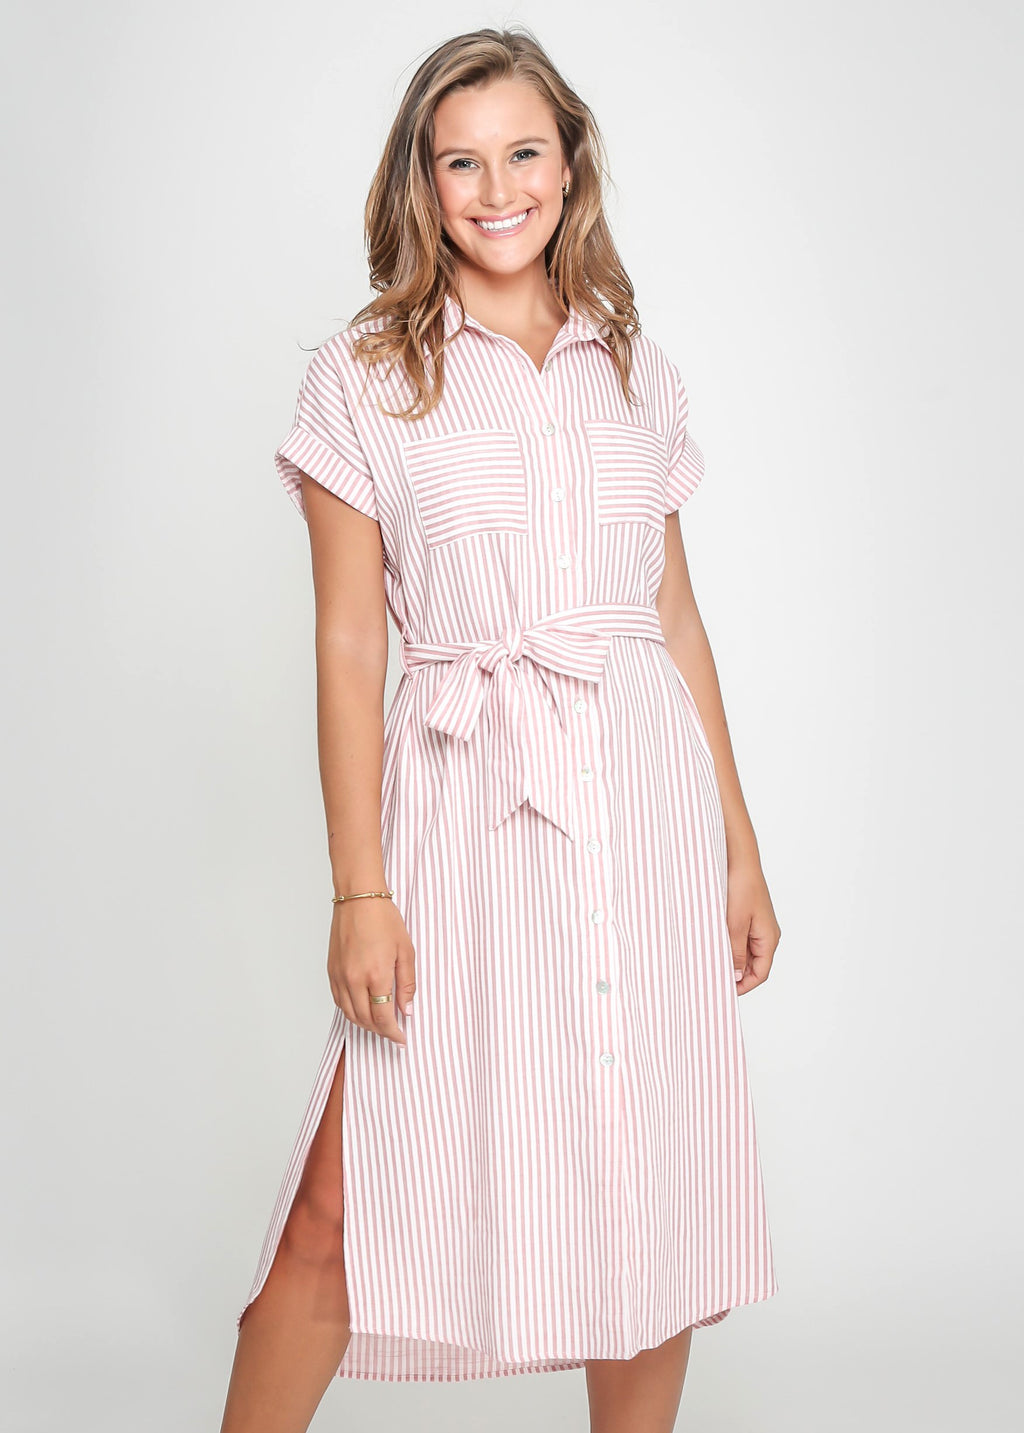 ELLE DRESS - ROSE STRIPE